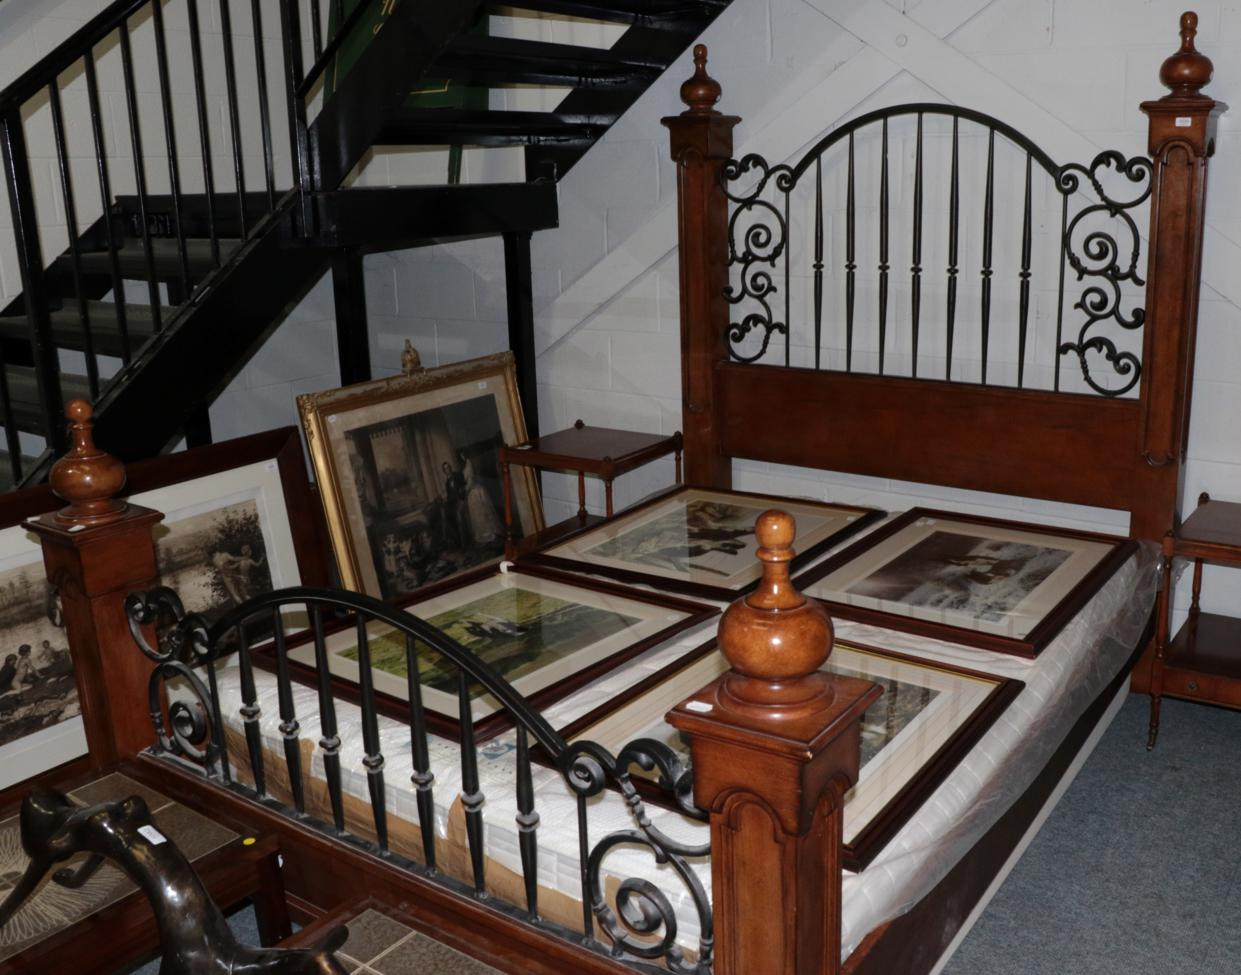 Lot 1039 - The Stanley Furniture Company: A Walnut Effect and Black Wrought Iron Four-Poster Bed, modern,...